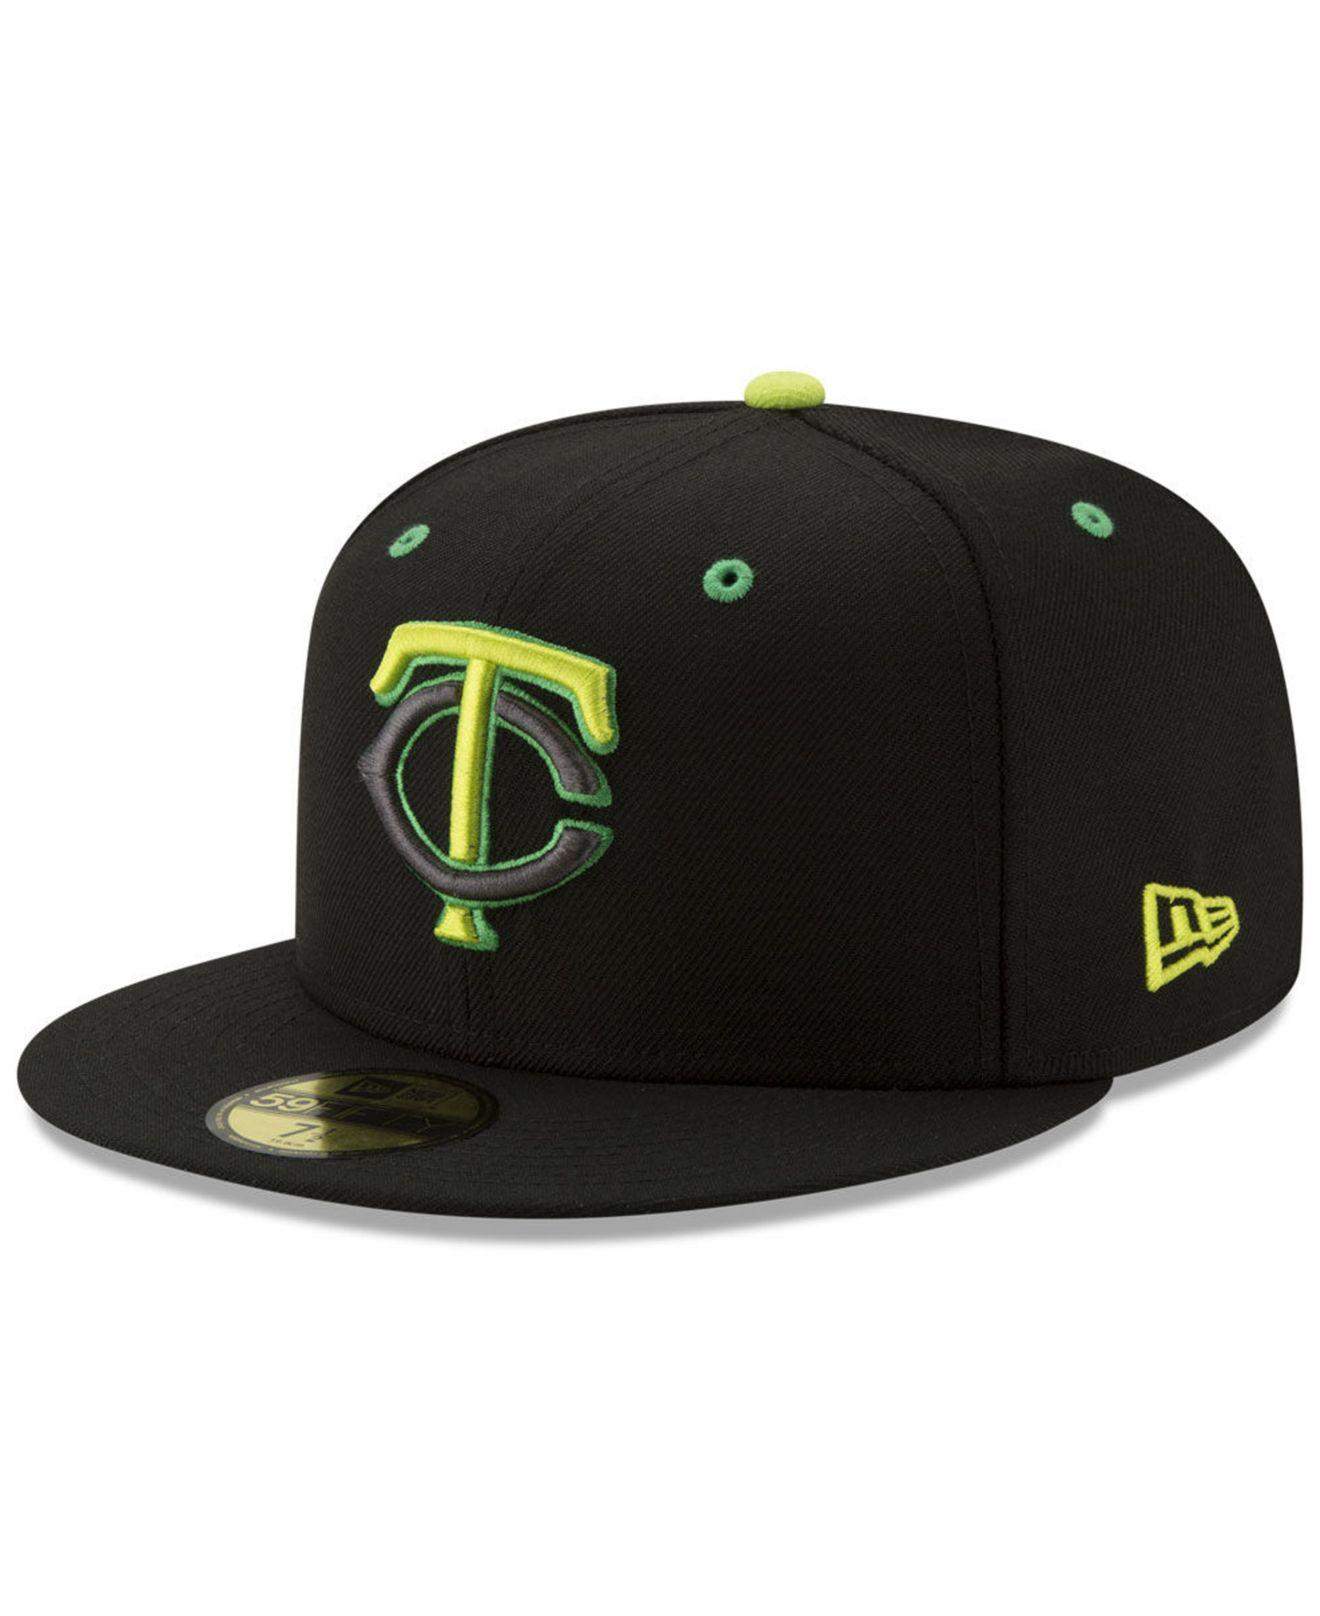 size 40 a5114 217c0 KTZ. Men s Black Minnesota Twins Night Moves 59fifty Fitted Cap